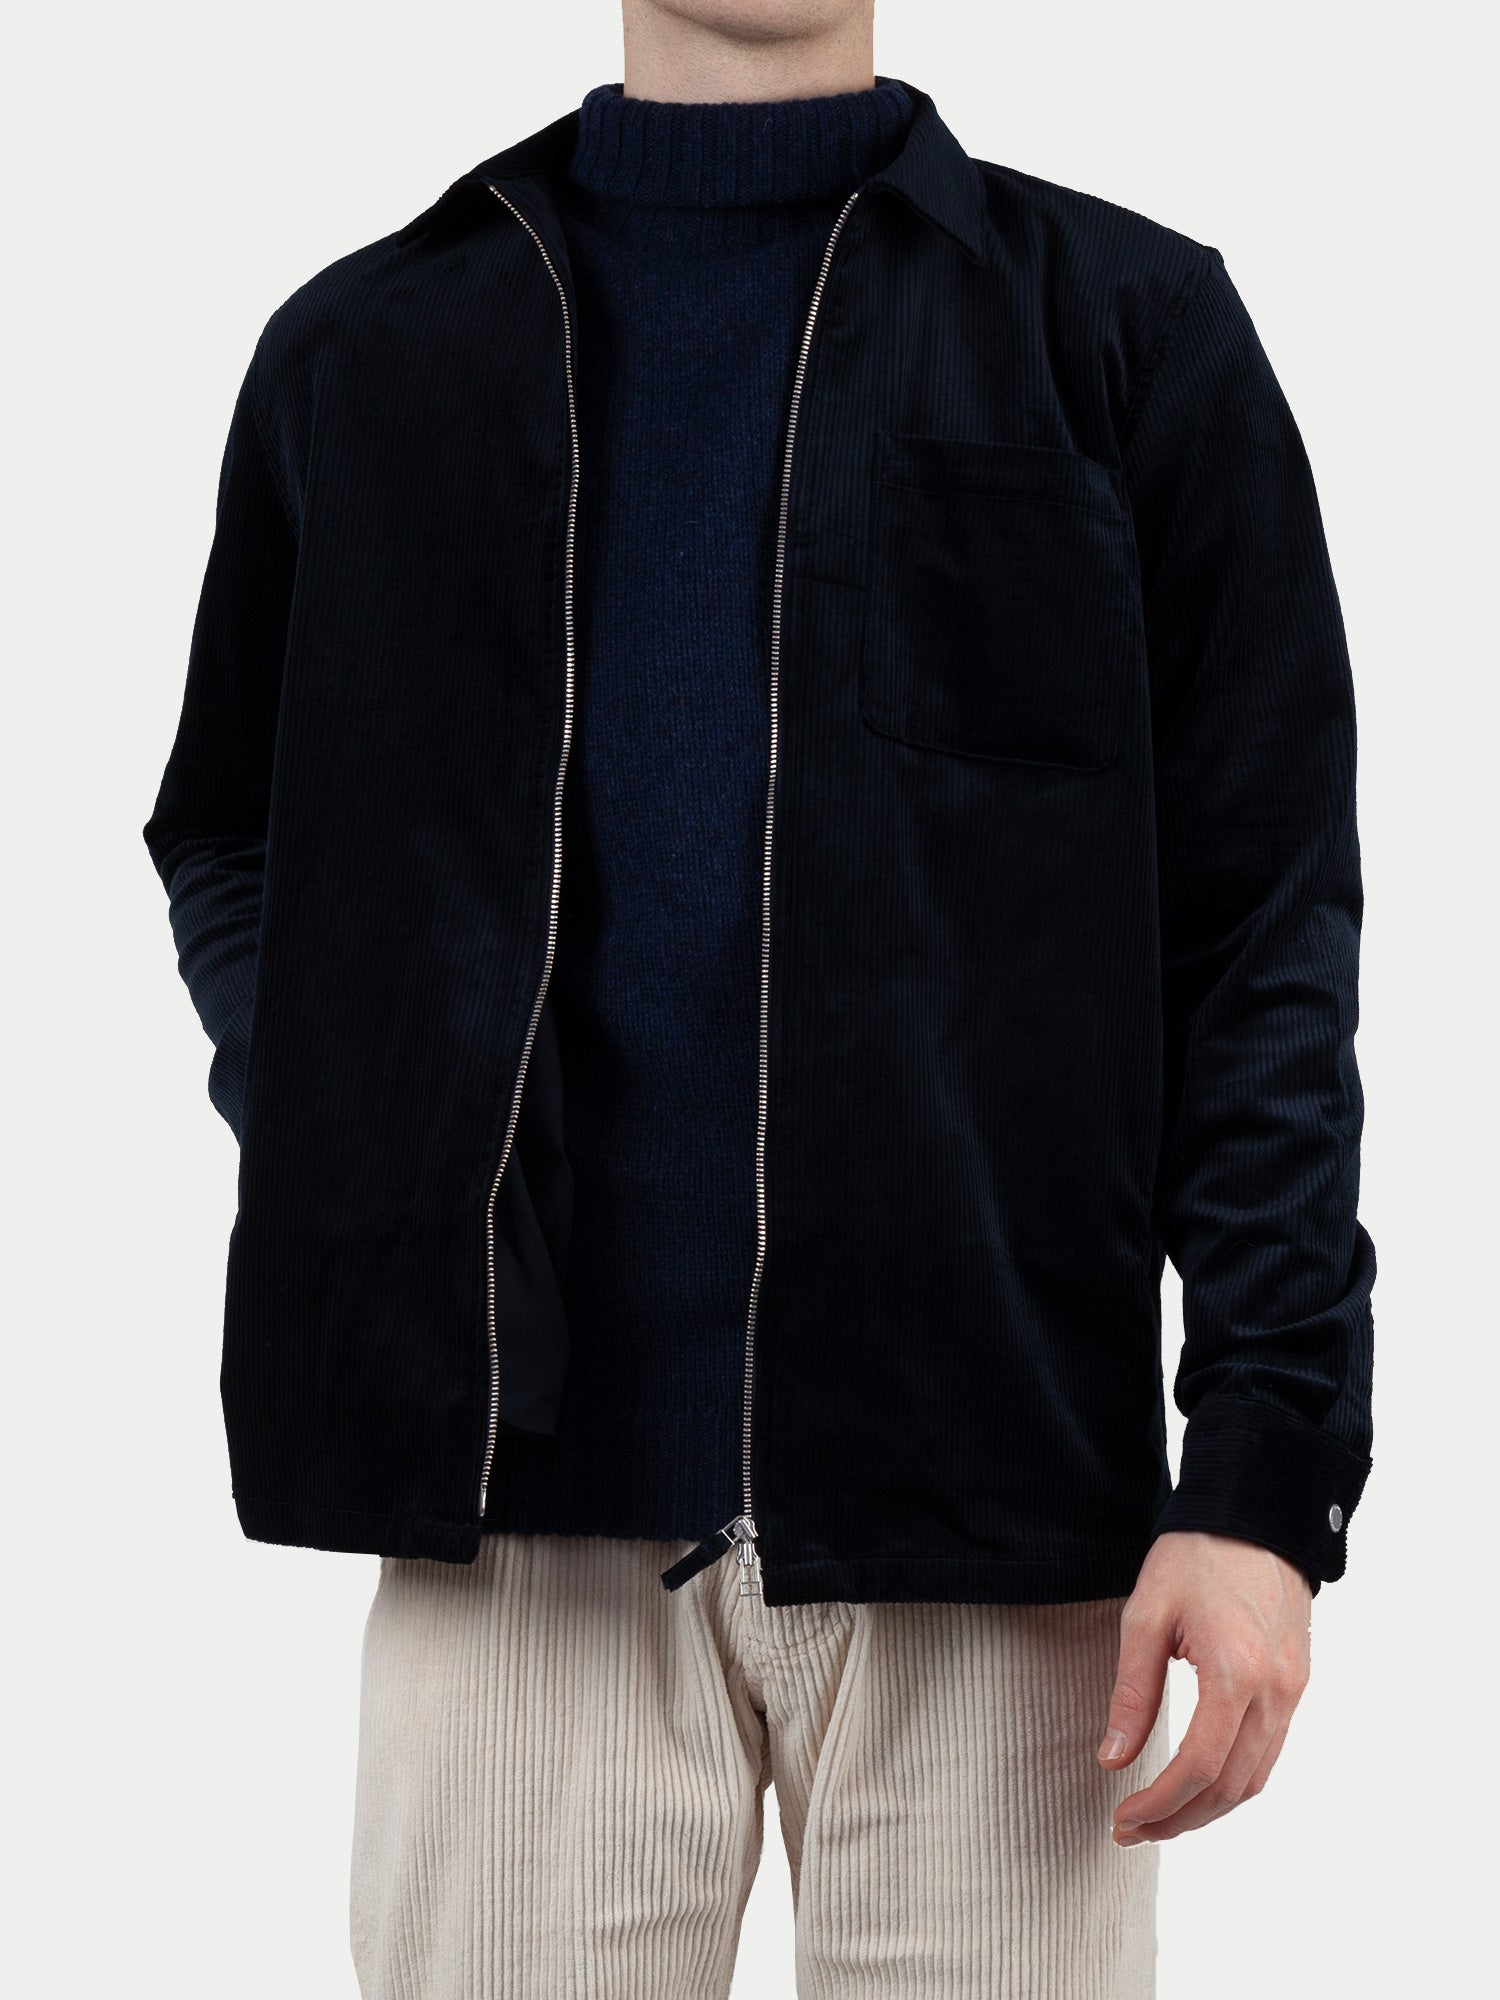 NN07 Zip Shirt (Navy Cord) m1